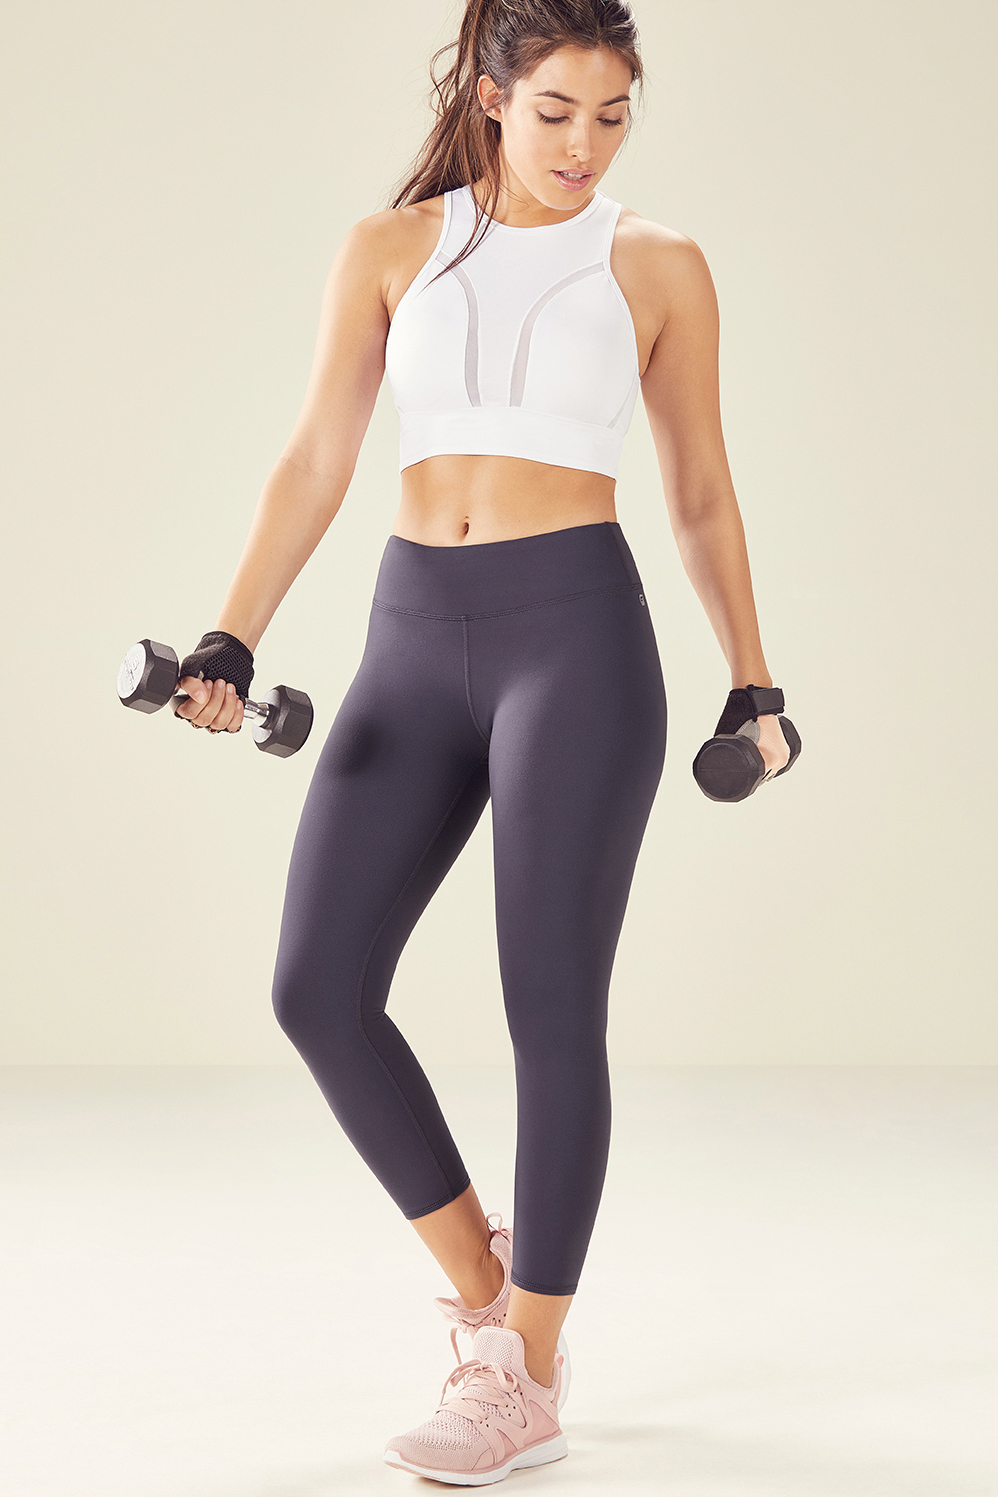 Gym Clothes Fitness Clothing Activewear Fabletics # Muebles Moedano